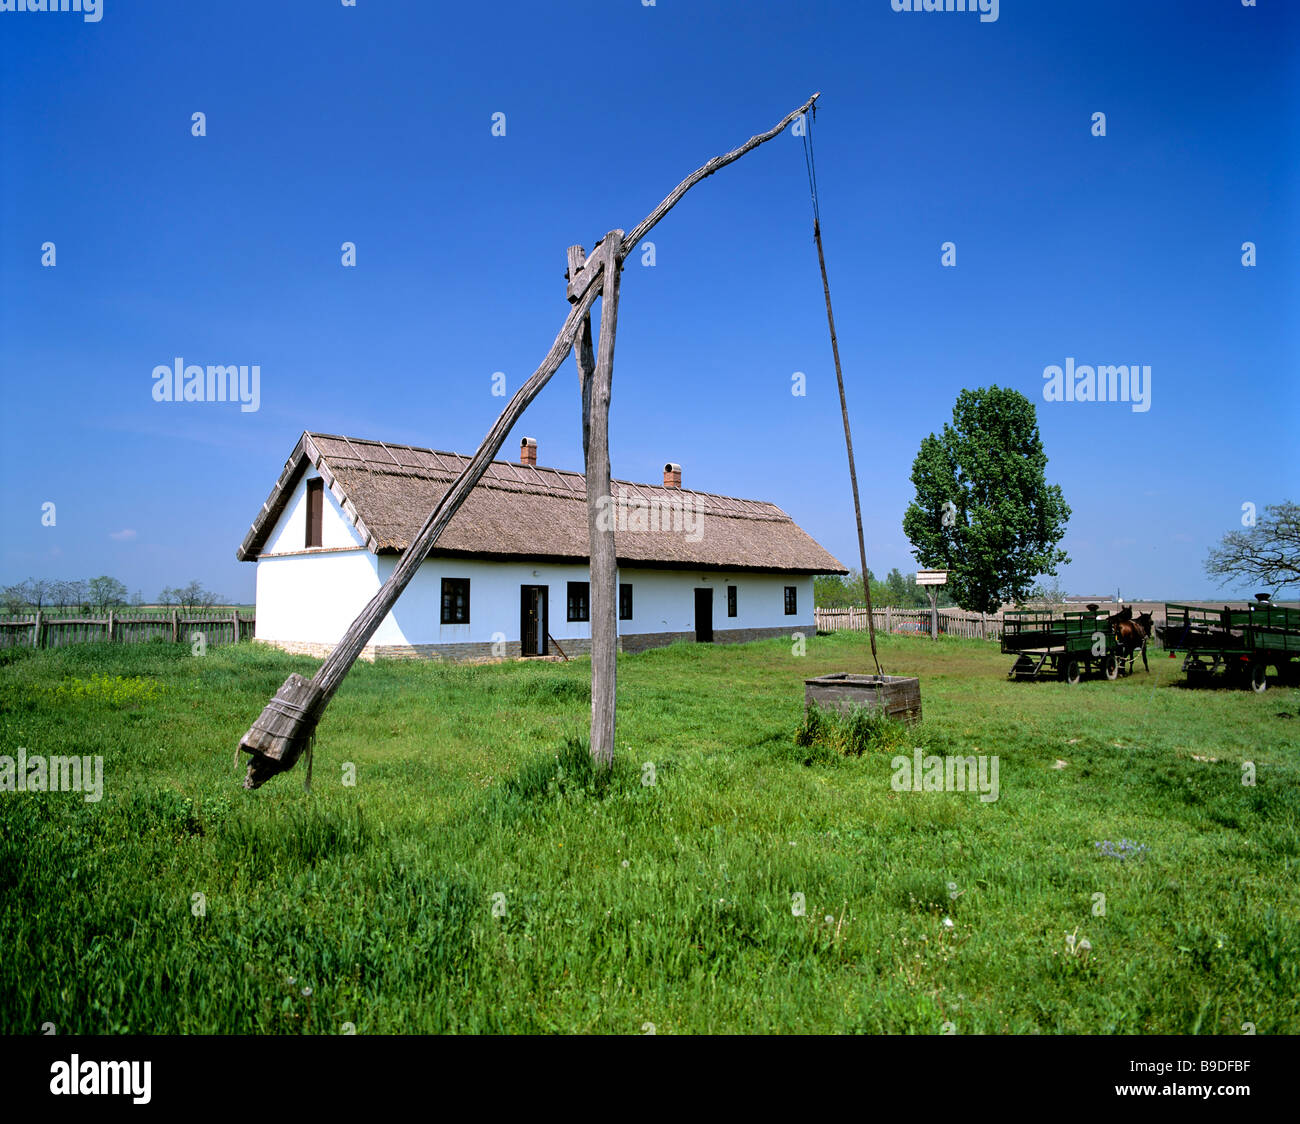 Csarda, well and farmhouse in the Puszta, Hungary - Stock Image